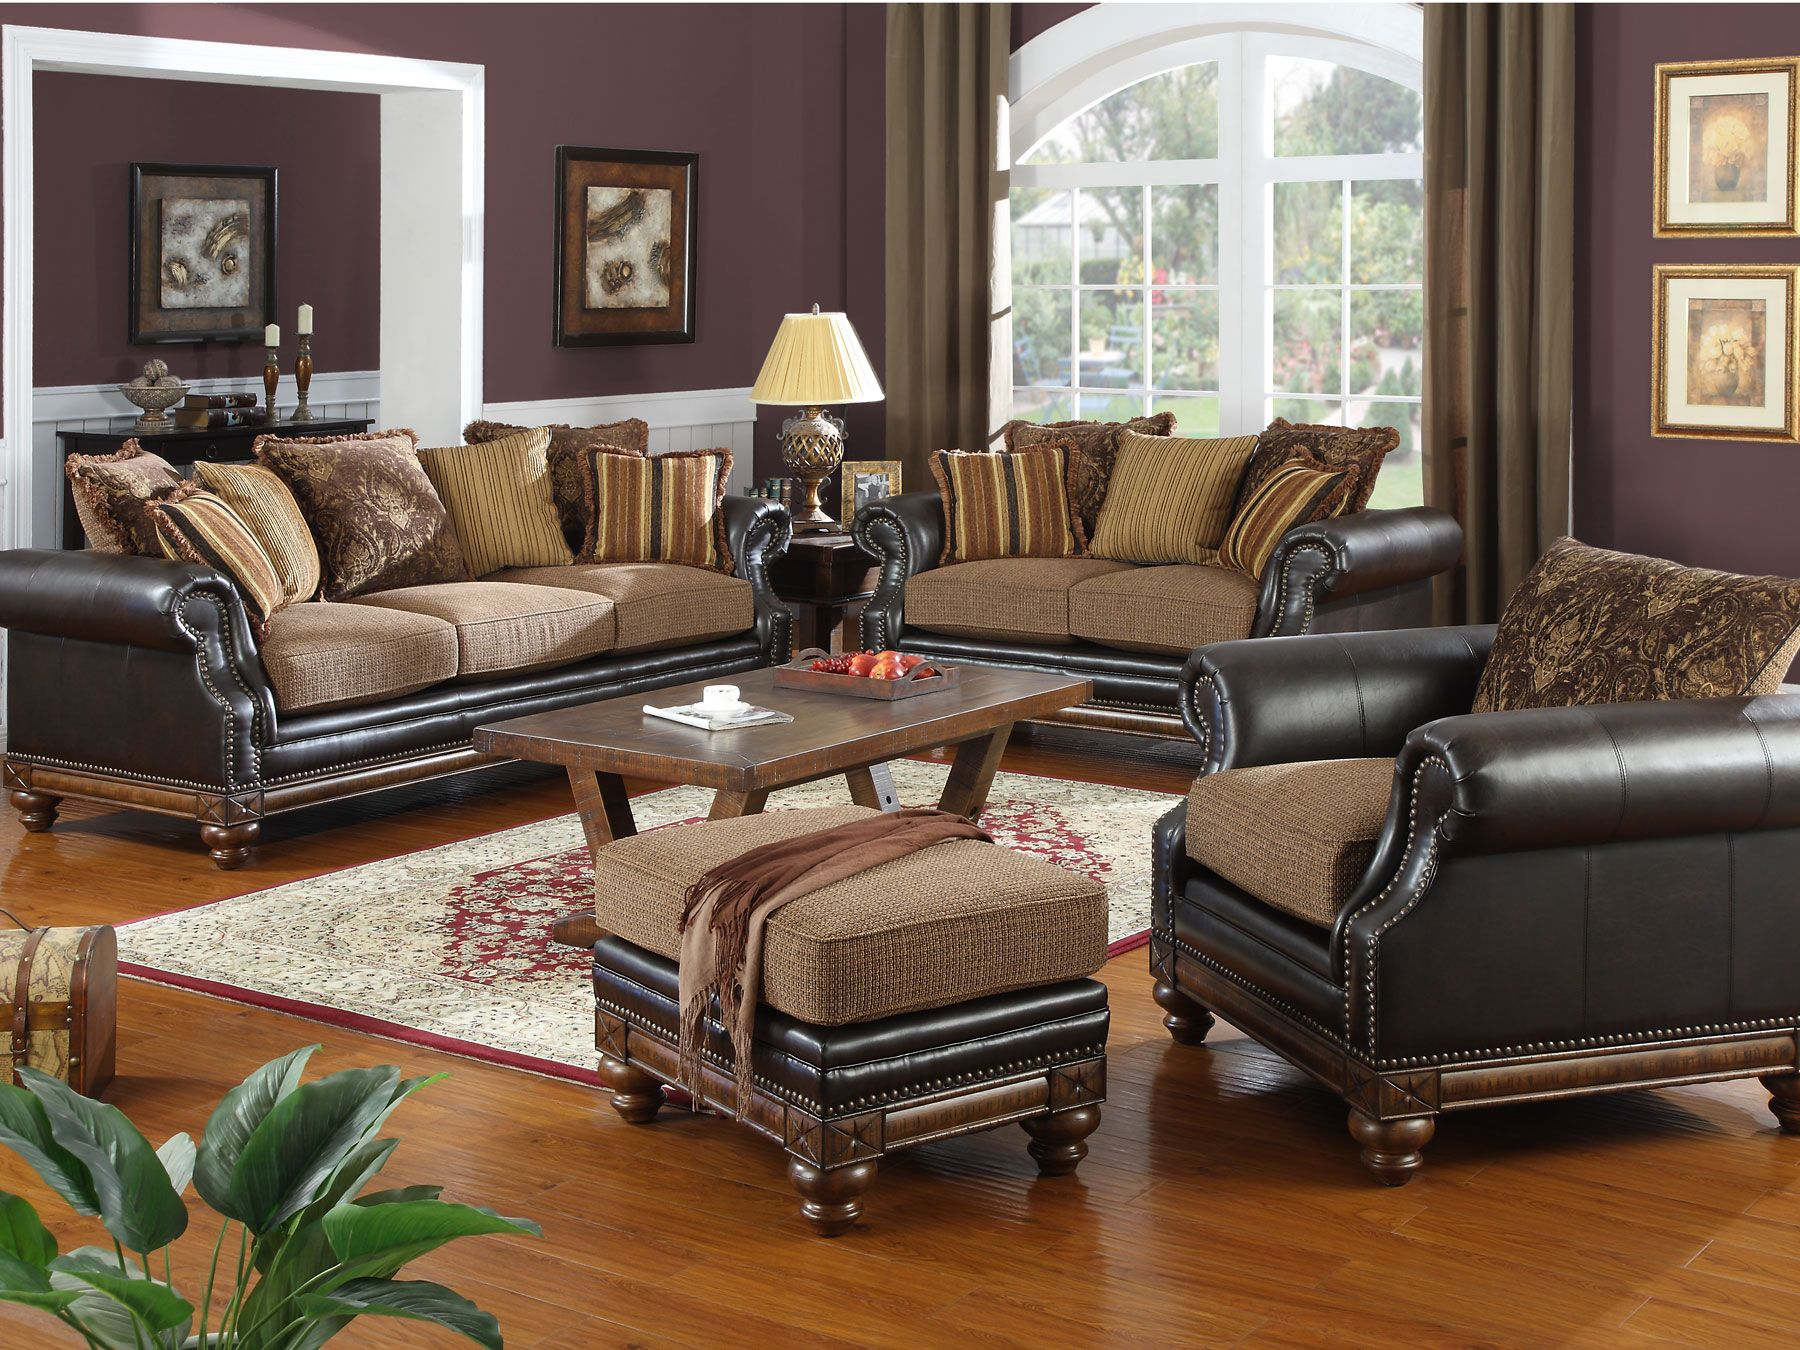 Live Room Set Living Room Furniture Ideas Http Arrishomescom 7384 Living